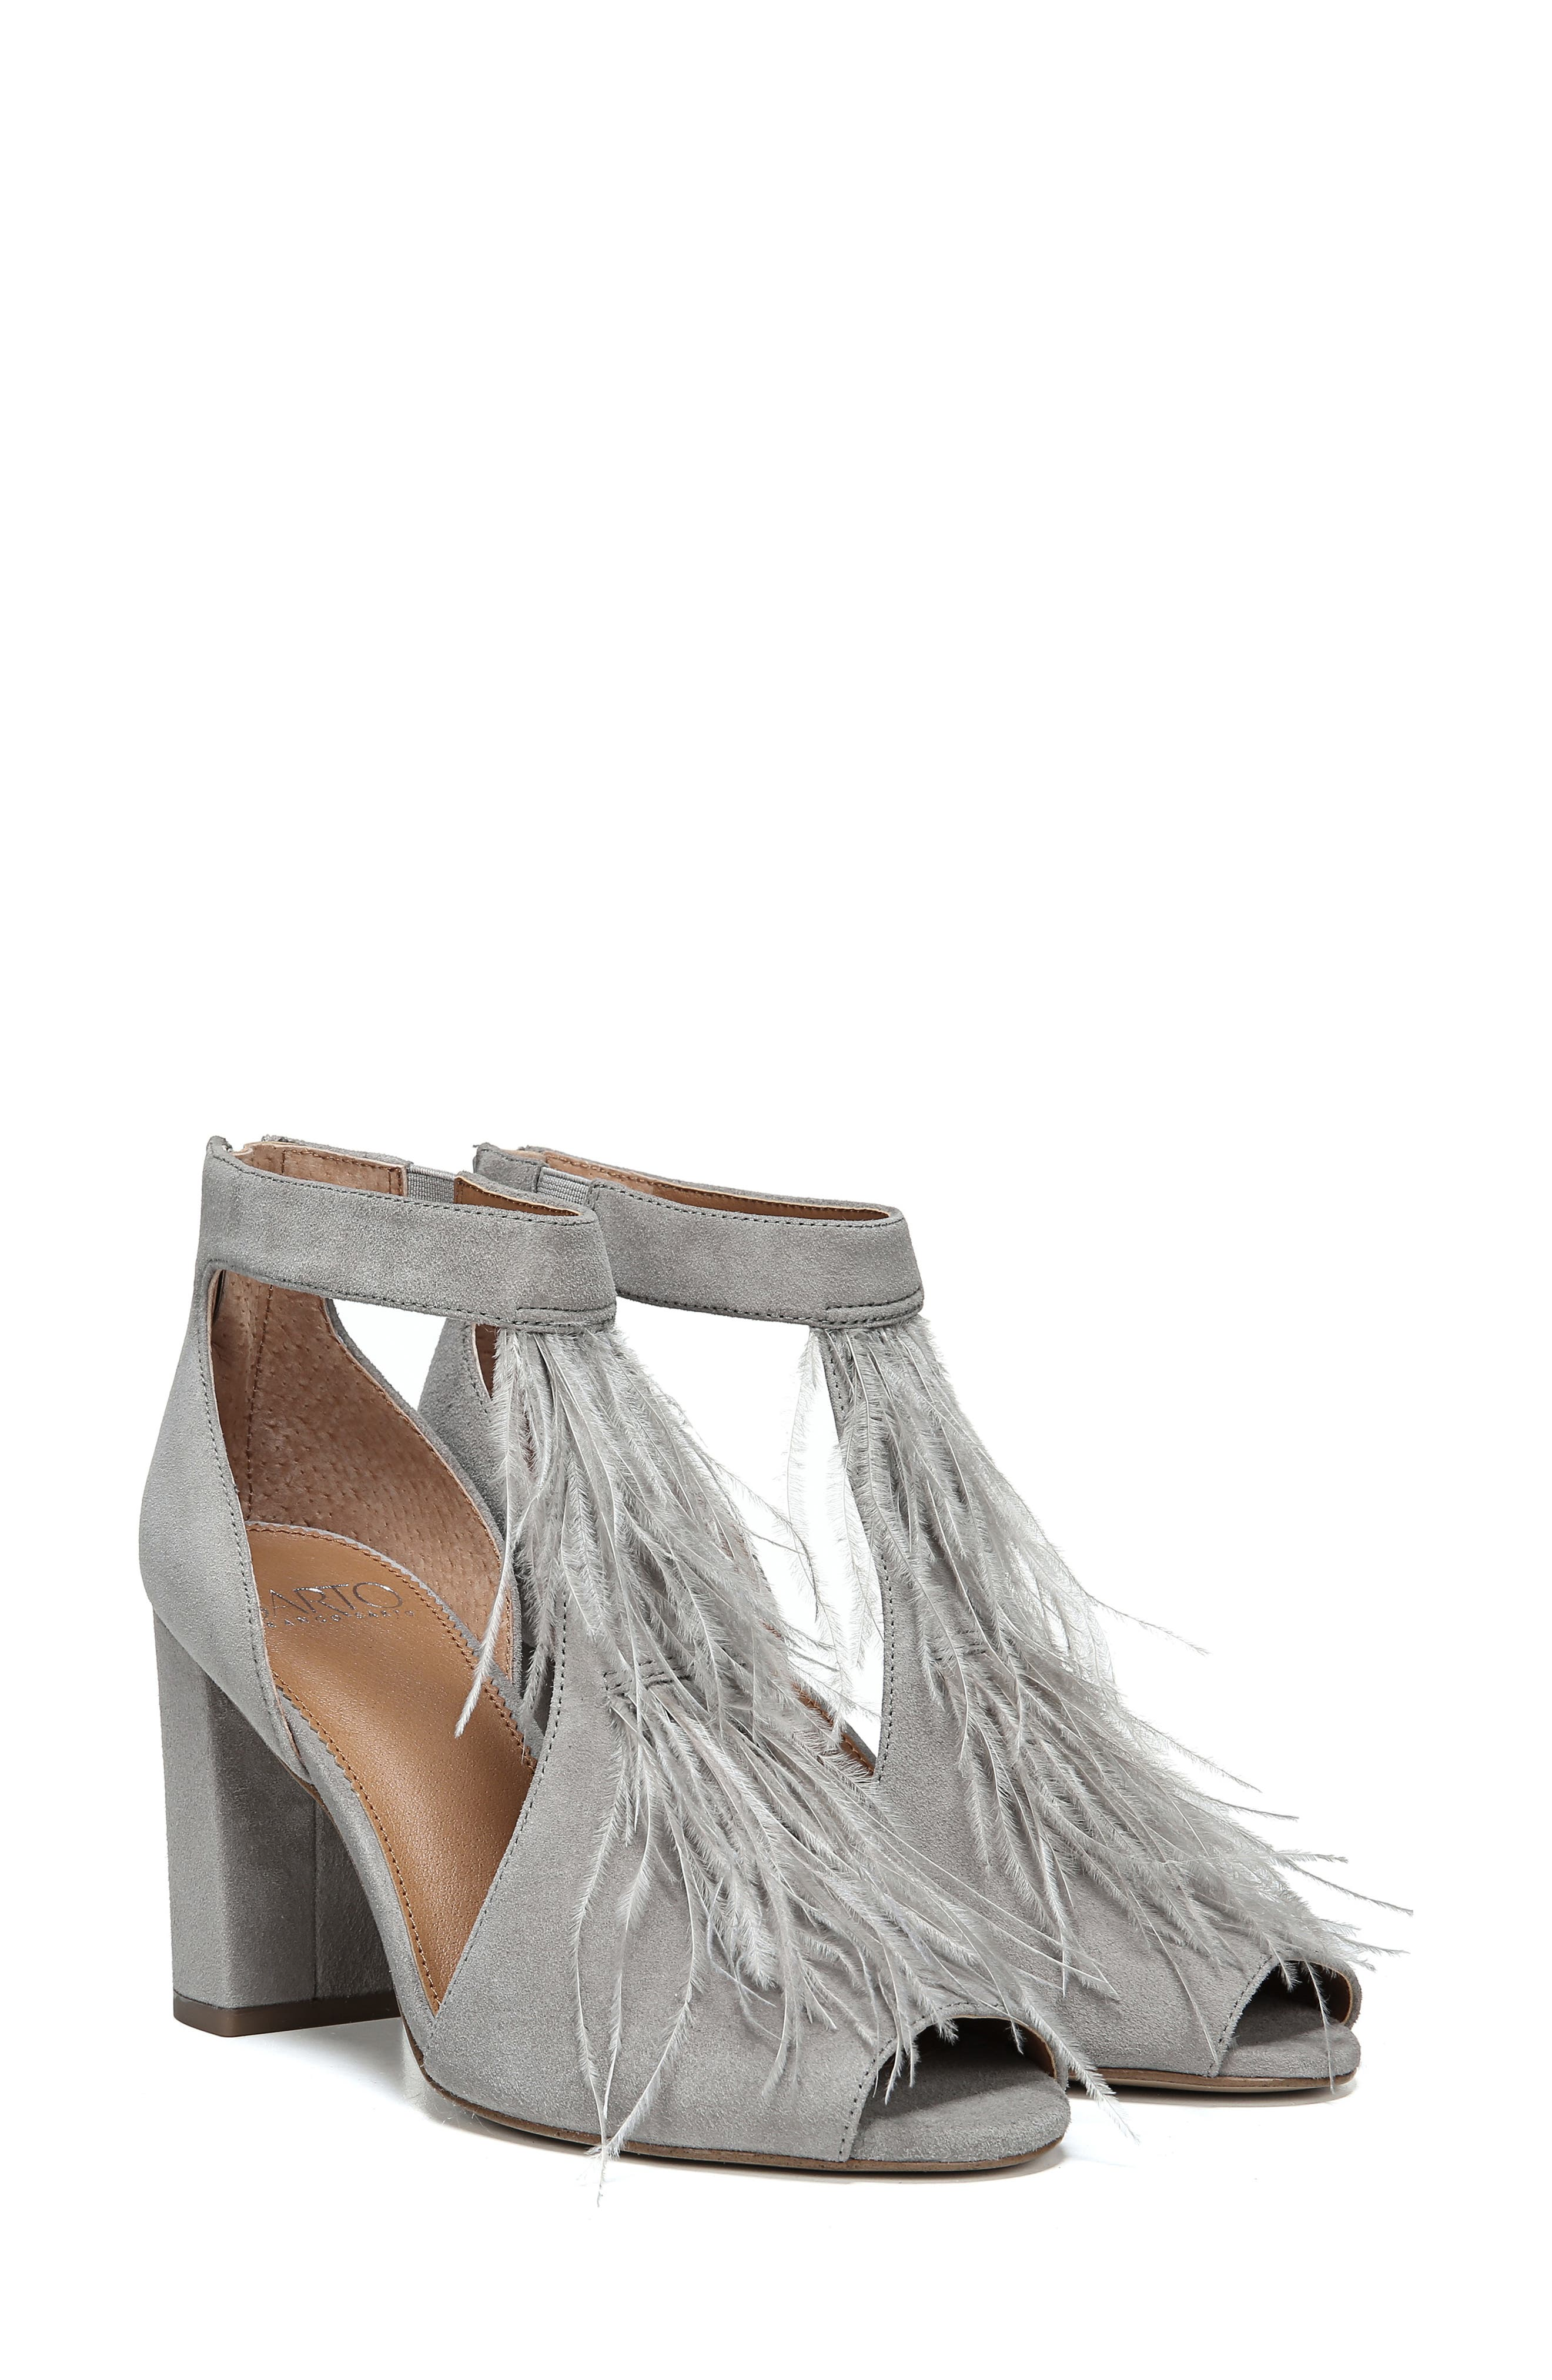 SARTO BY FRANCO SARTO, Olivette Sandal, Alternate thumbnail 7, color, GREYSTONE LEATHER